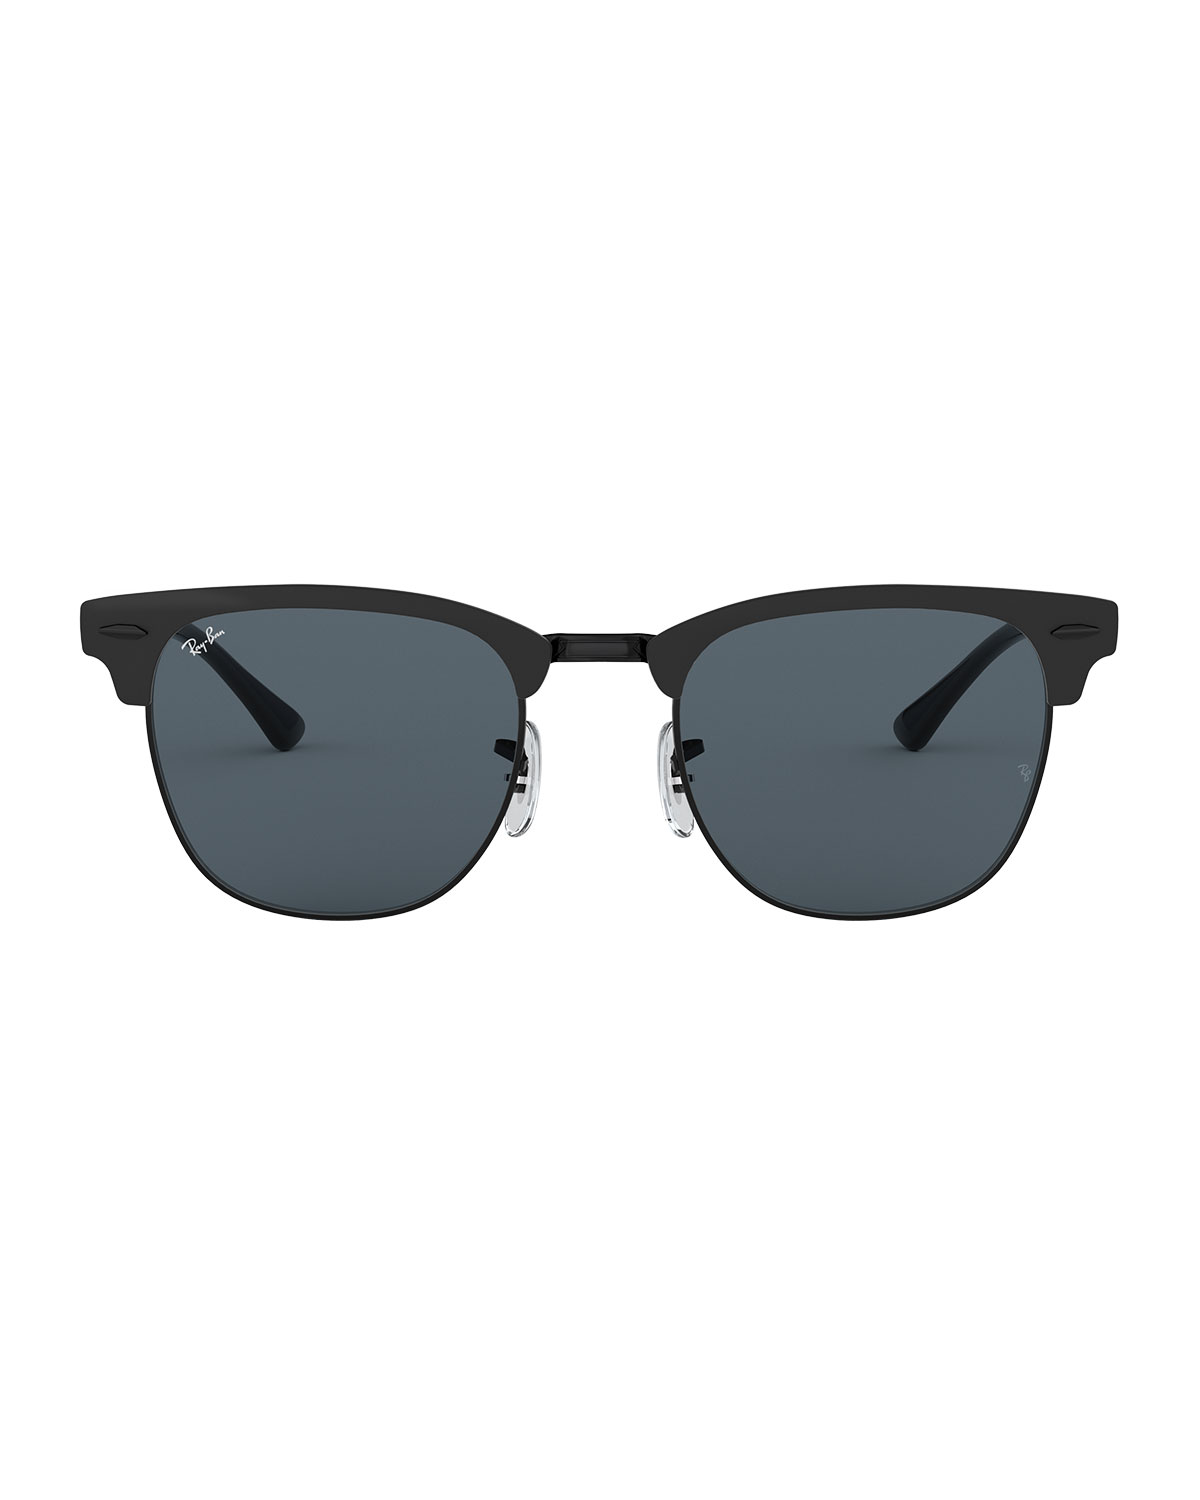 68716cc3c6 RAY BAN RAY-BAN UNISEX METAL CLUBMASTER SUNGLASSES